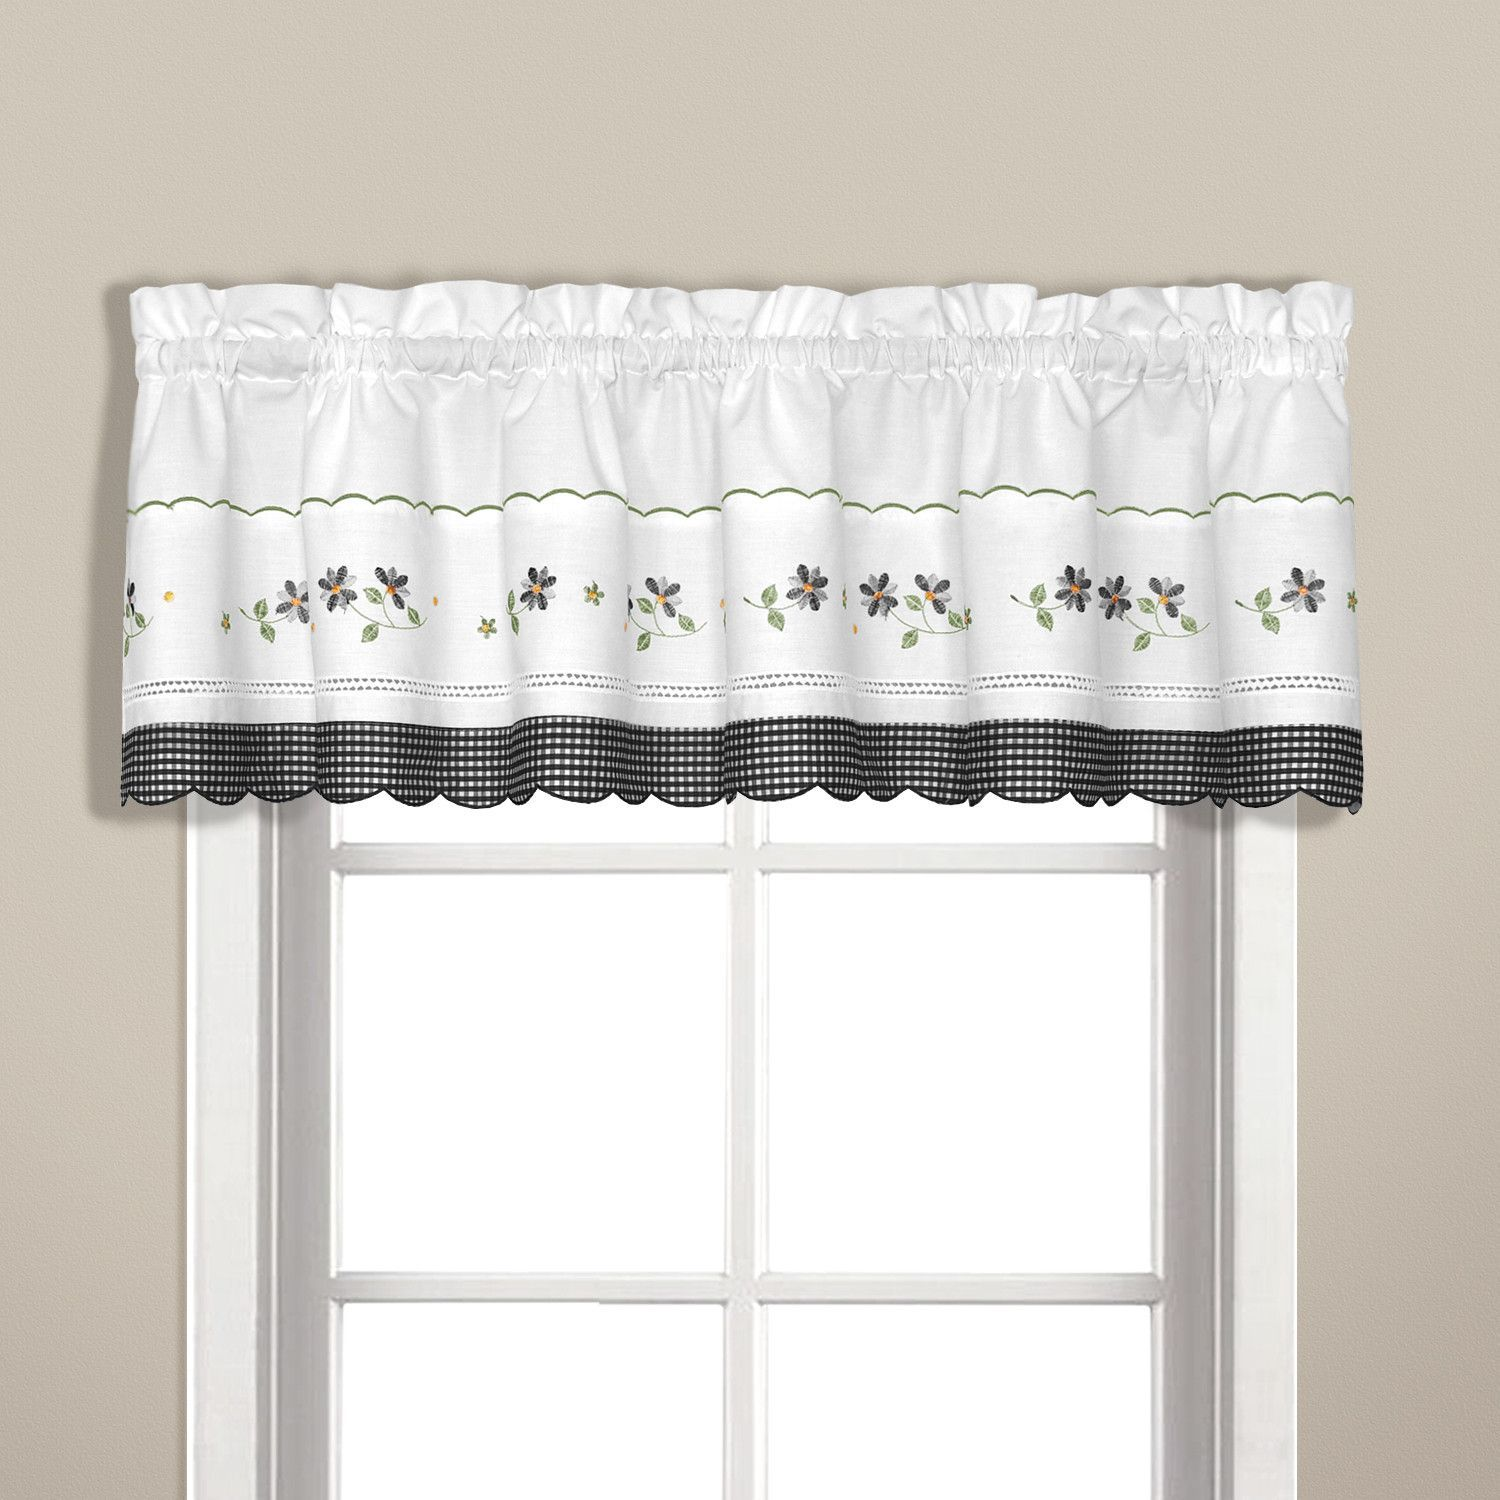 Gingham curtain valance products pinterest gingham curtains